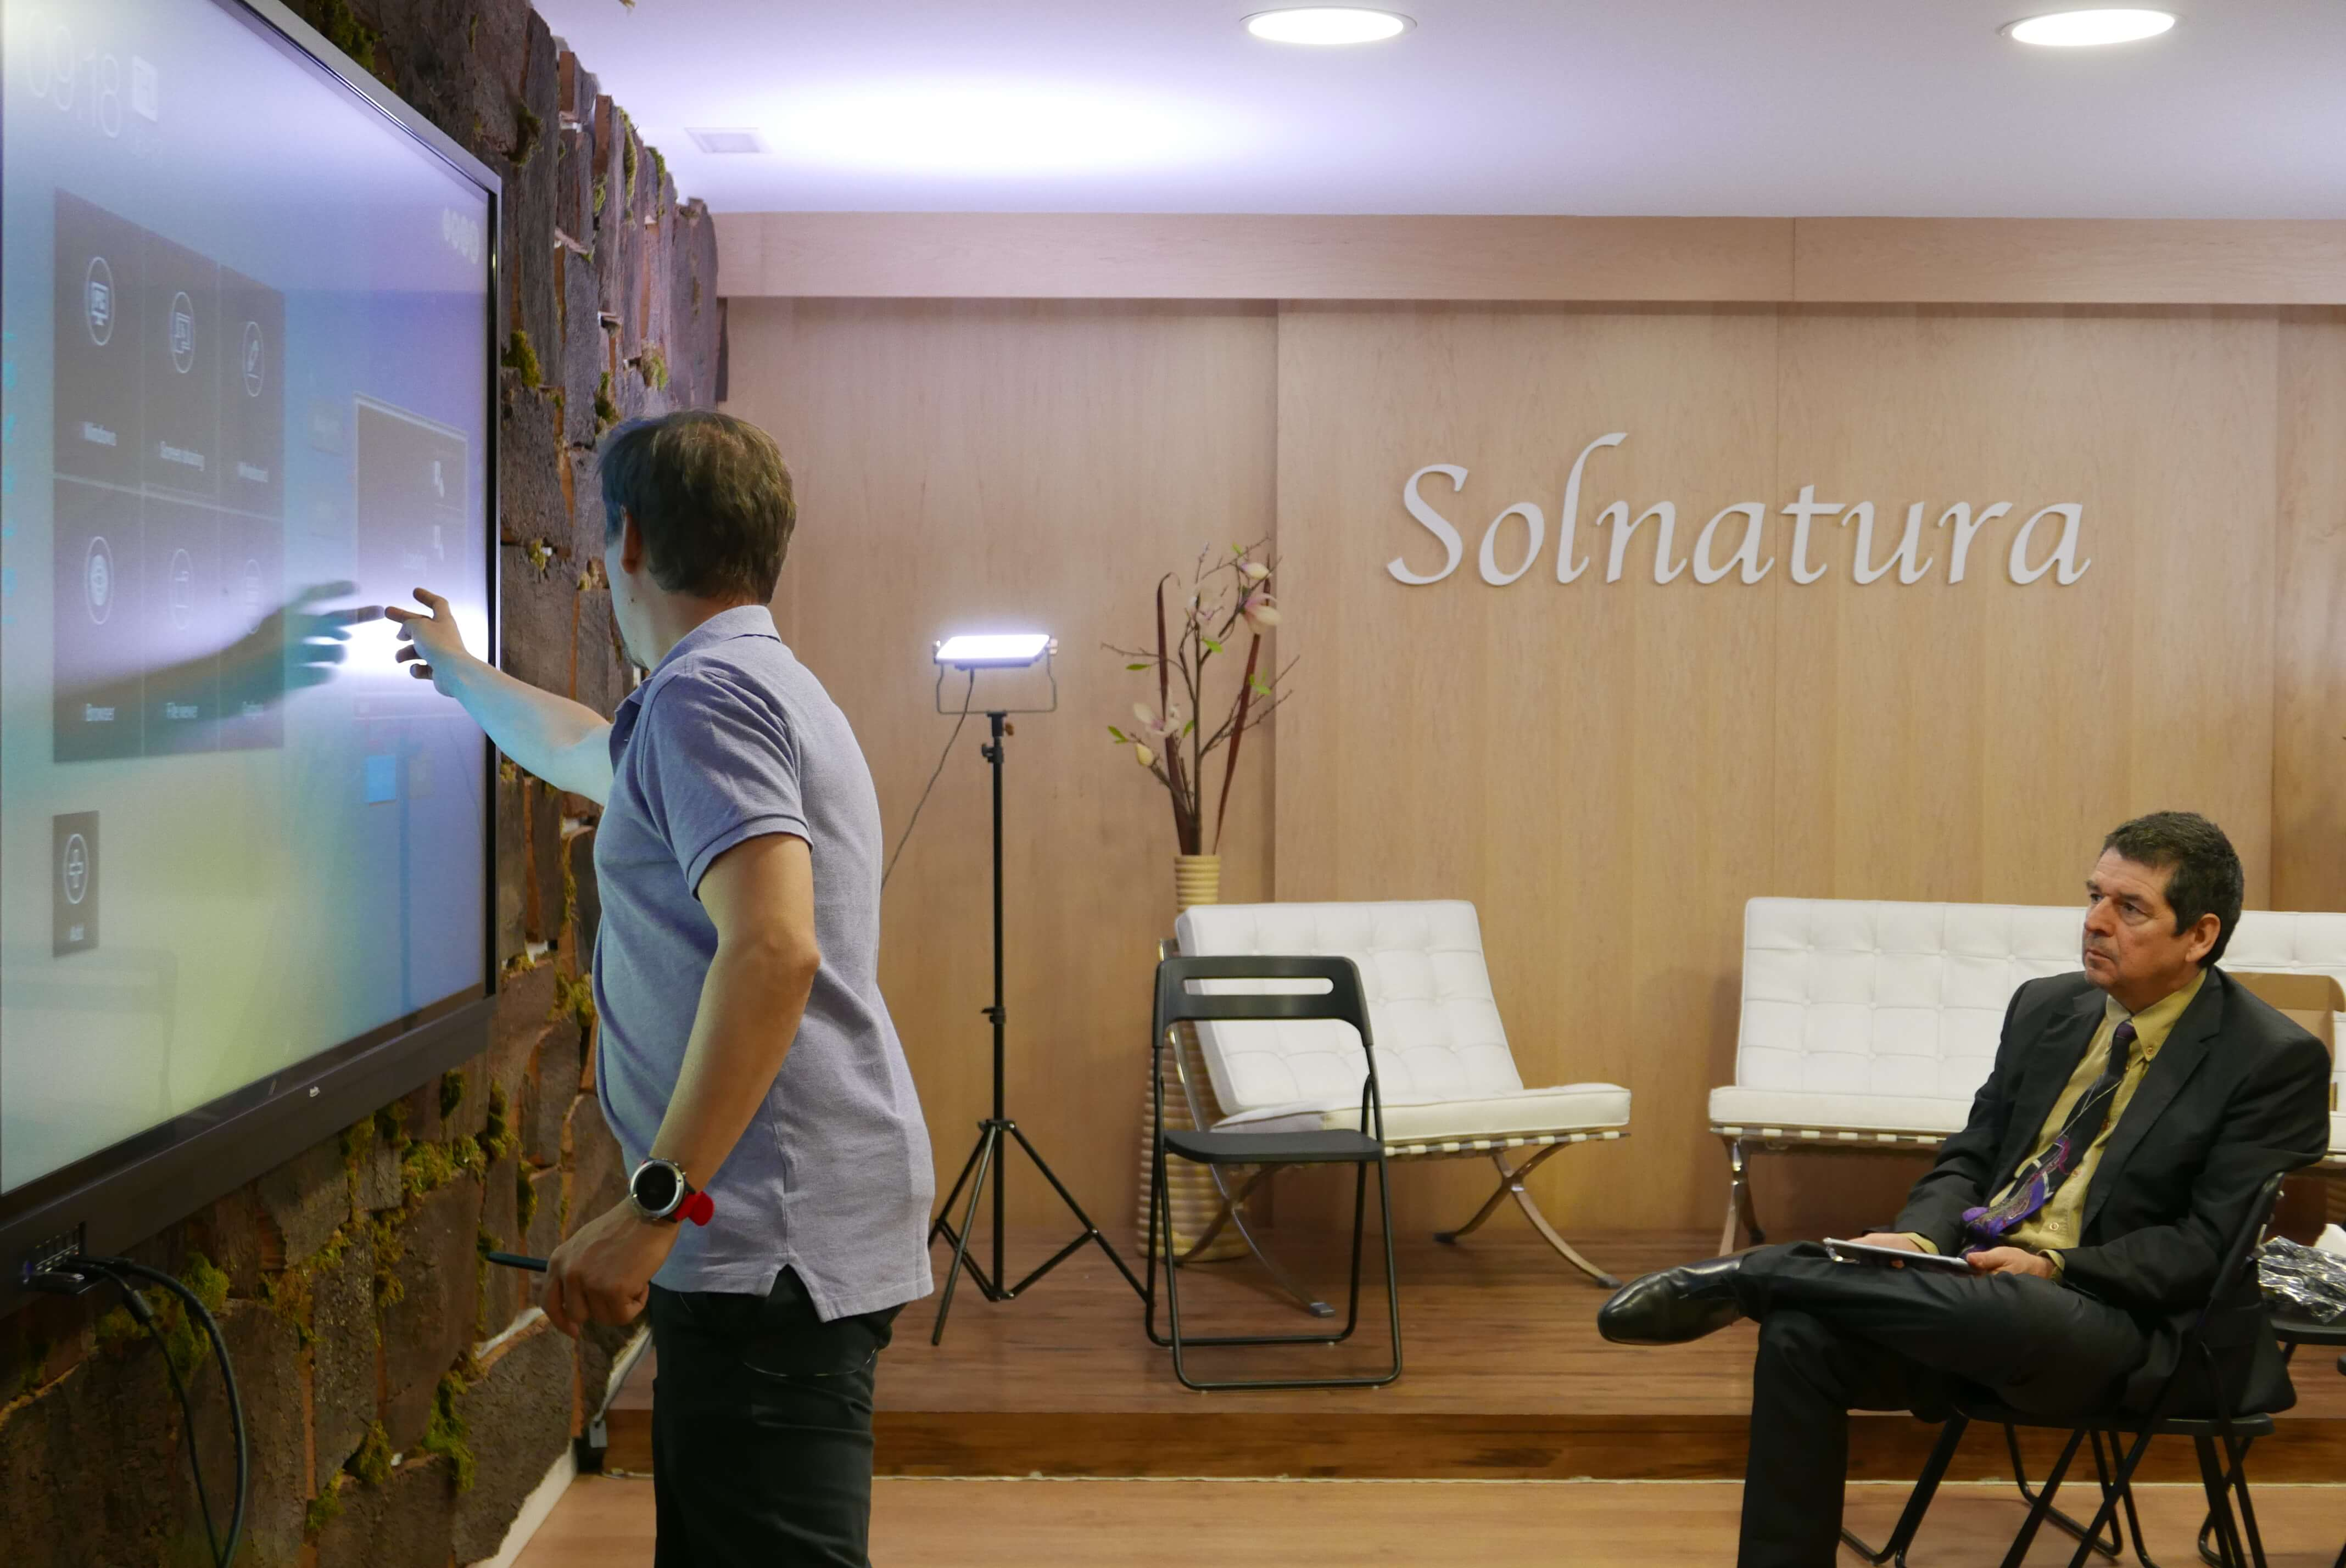 Solnaturaleza with newline interactive display